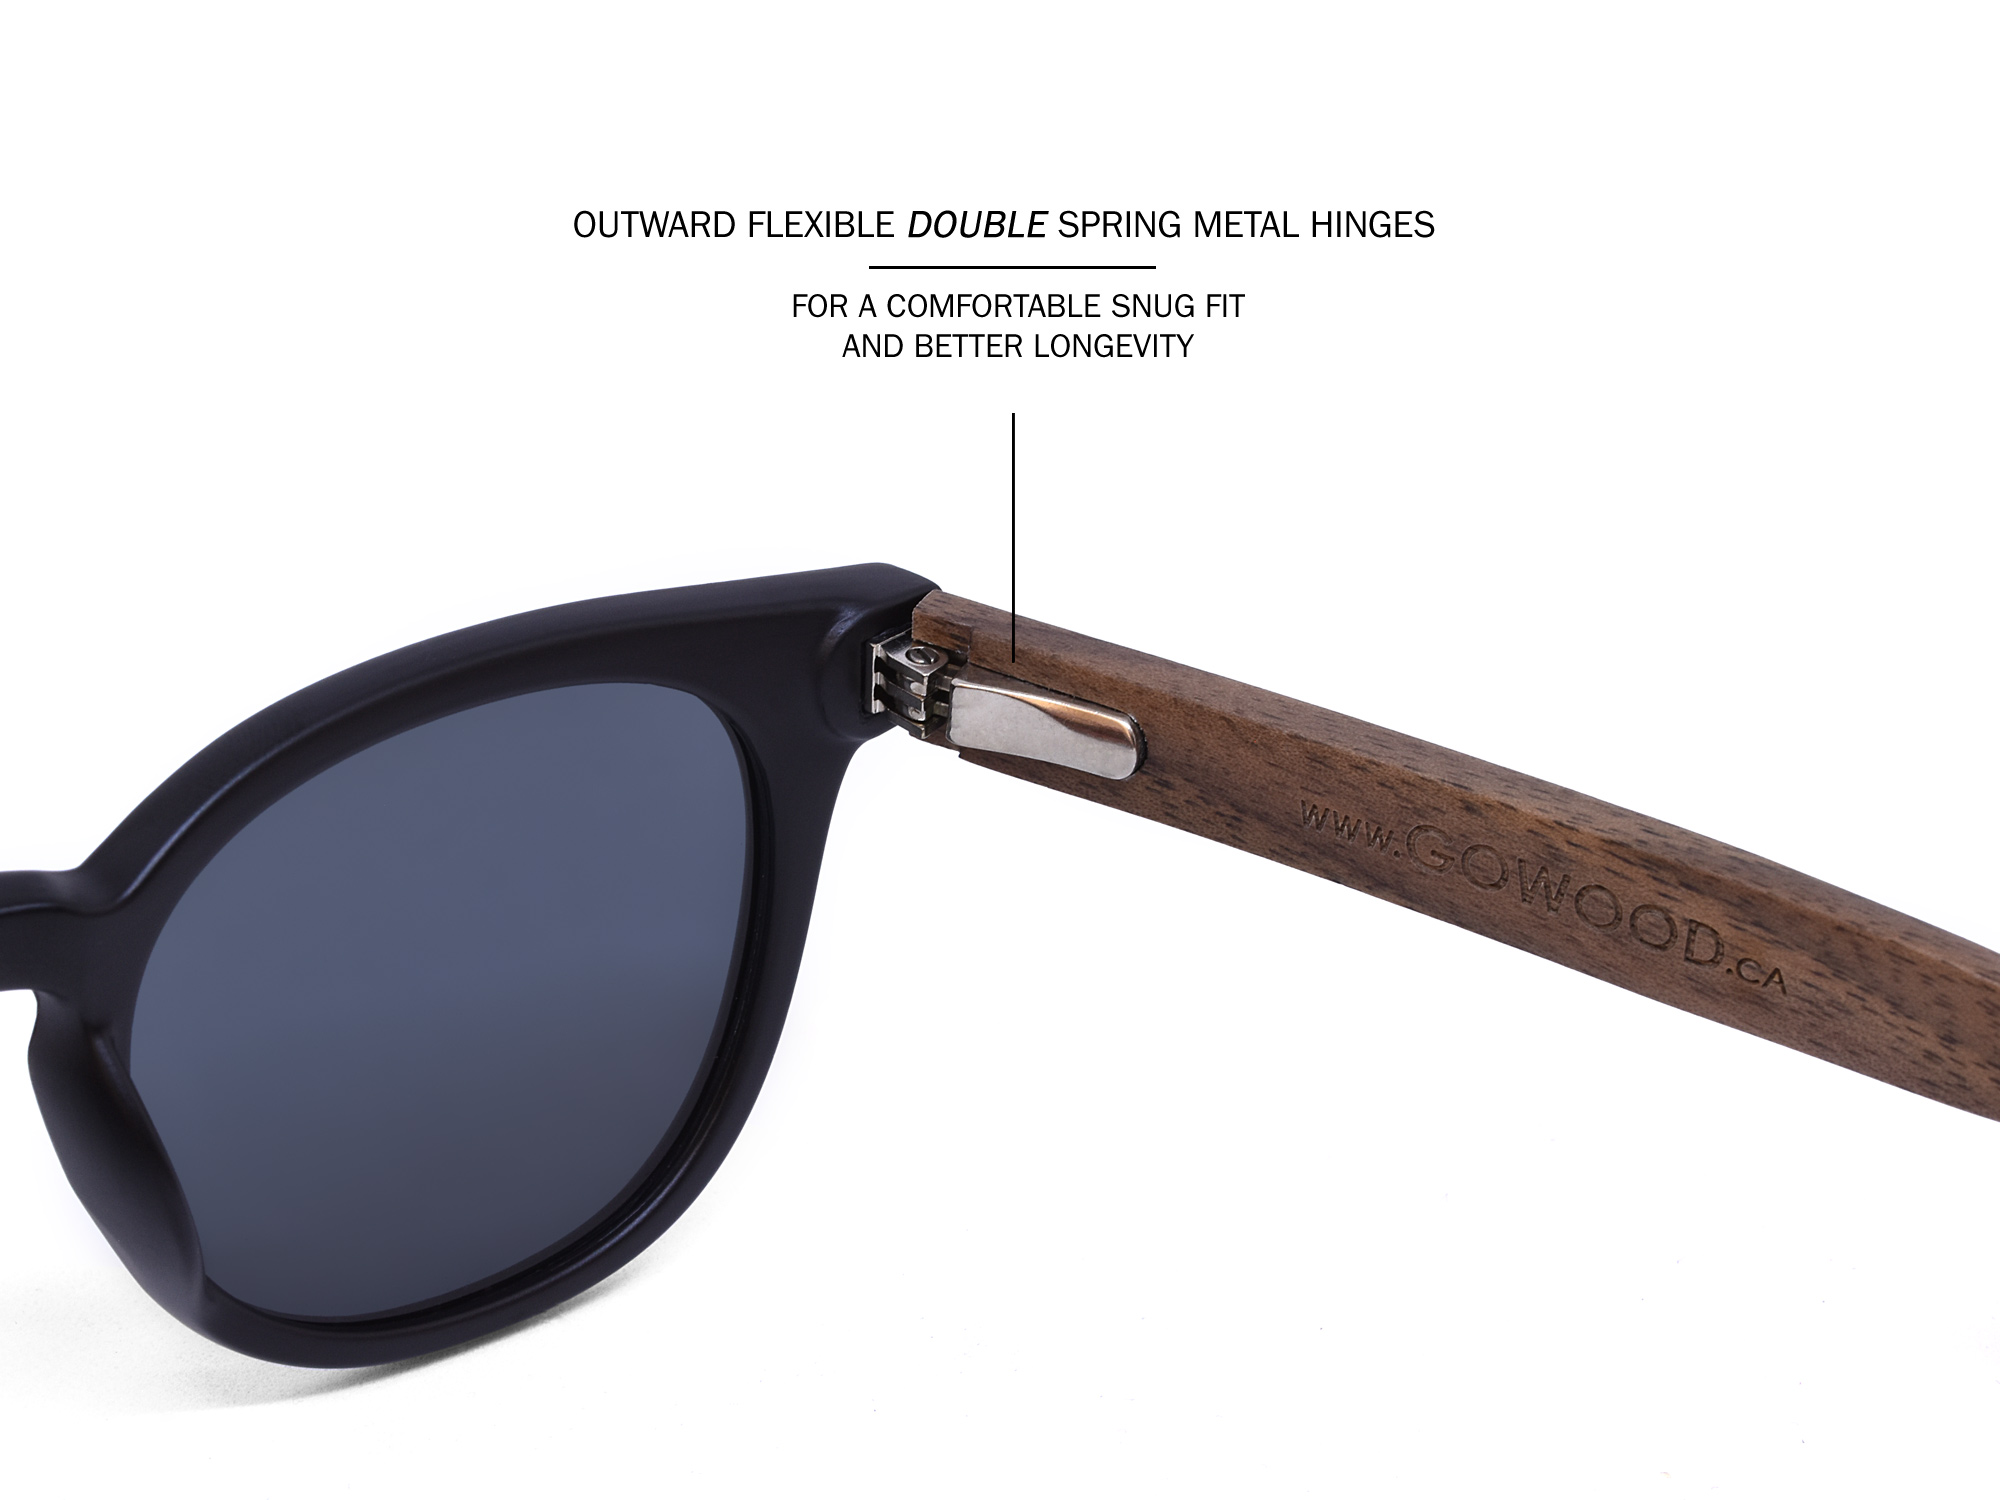 Round walnut wood sunglasses hinge